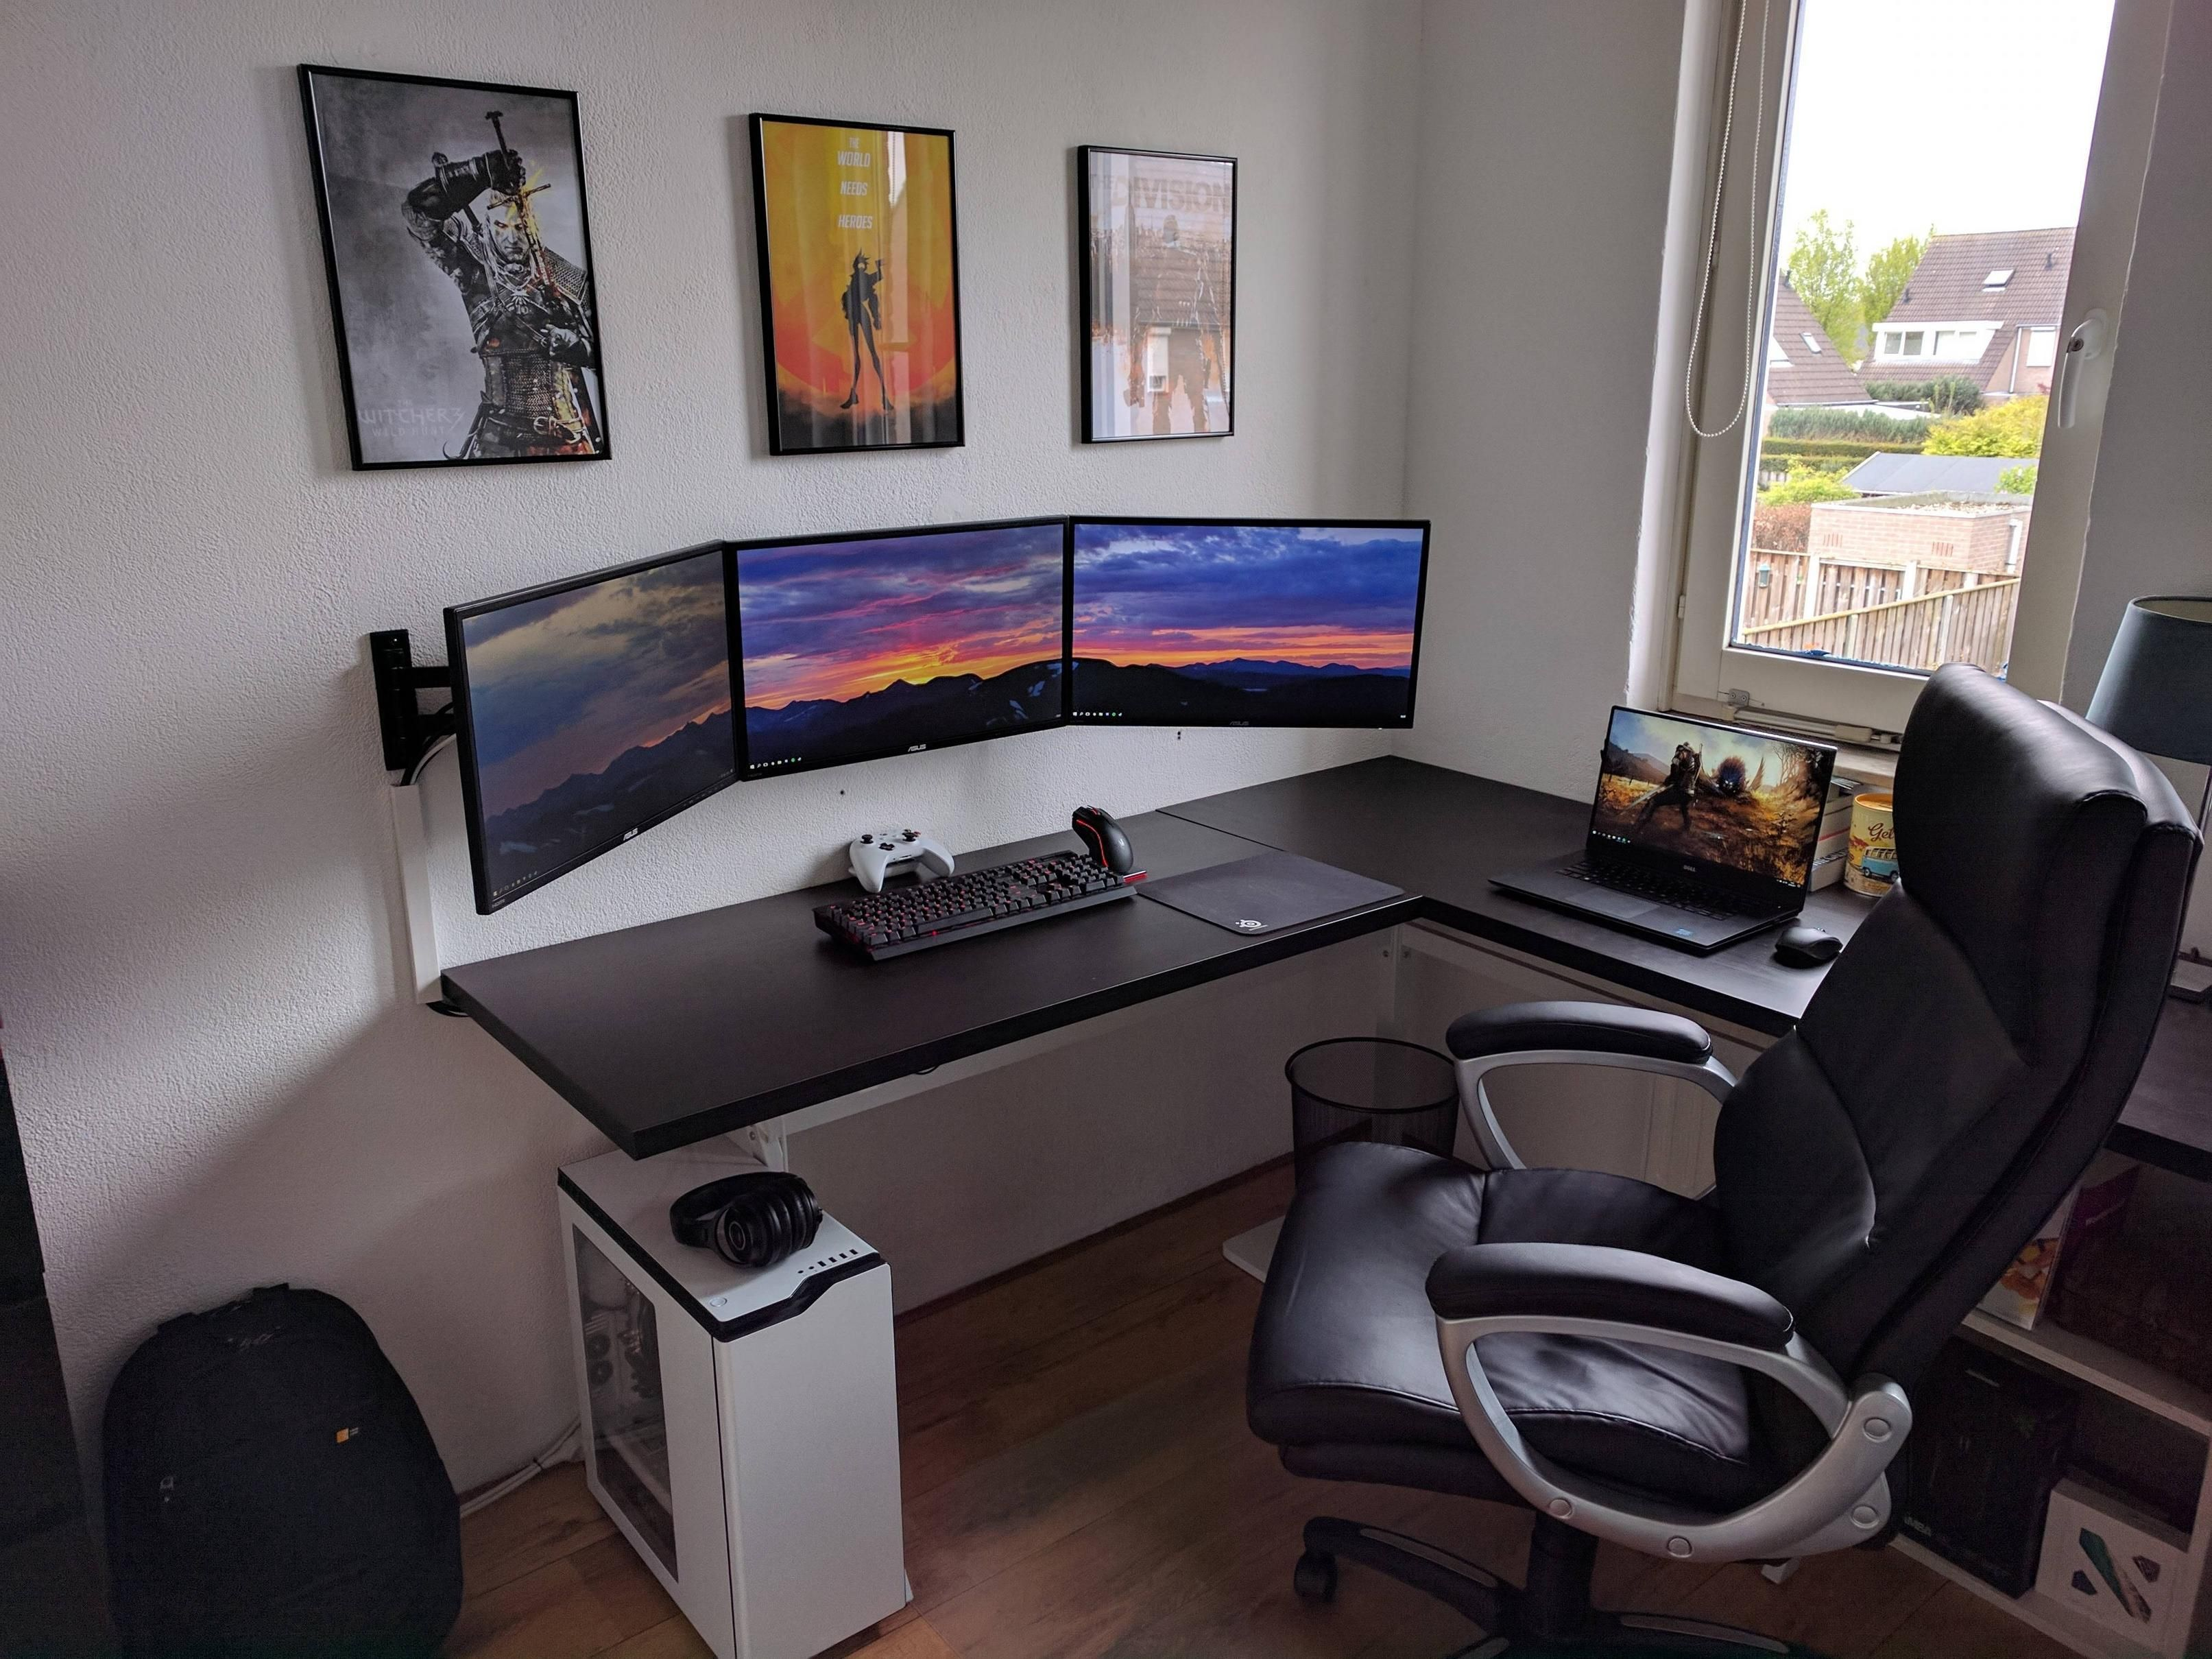 50+ Best Setup of Video Game Room Ideas [A Gamer's Guide ...